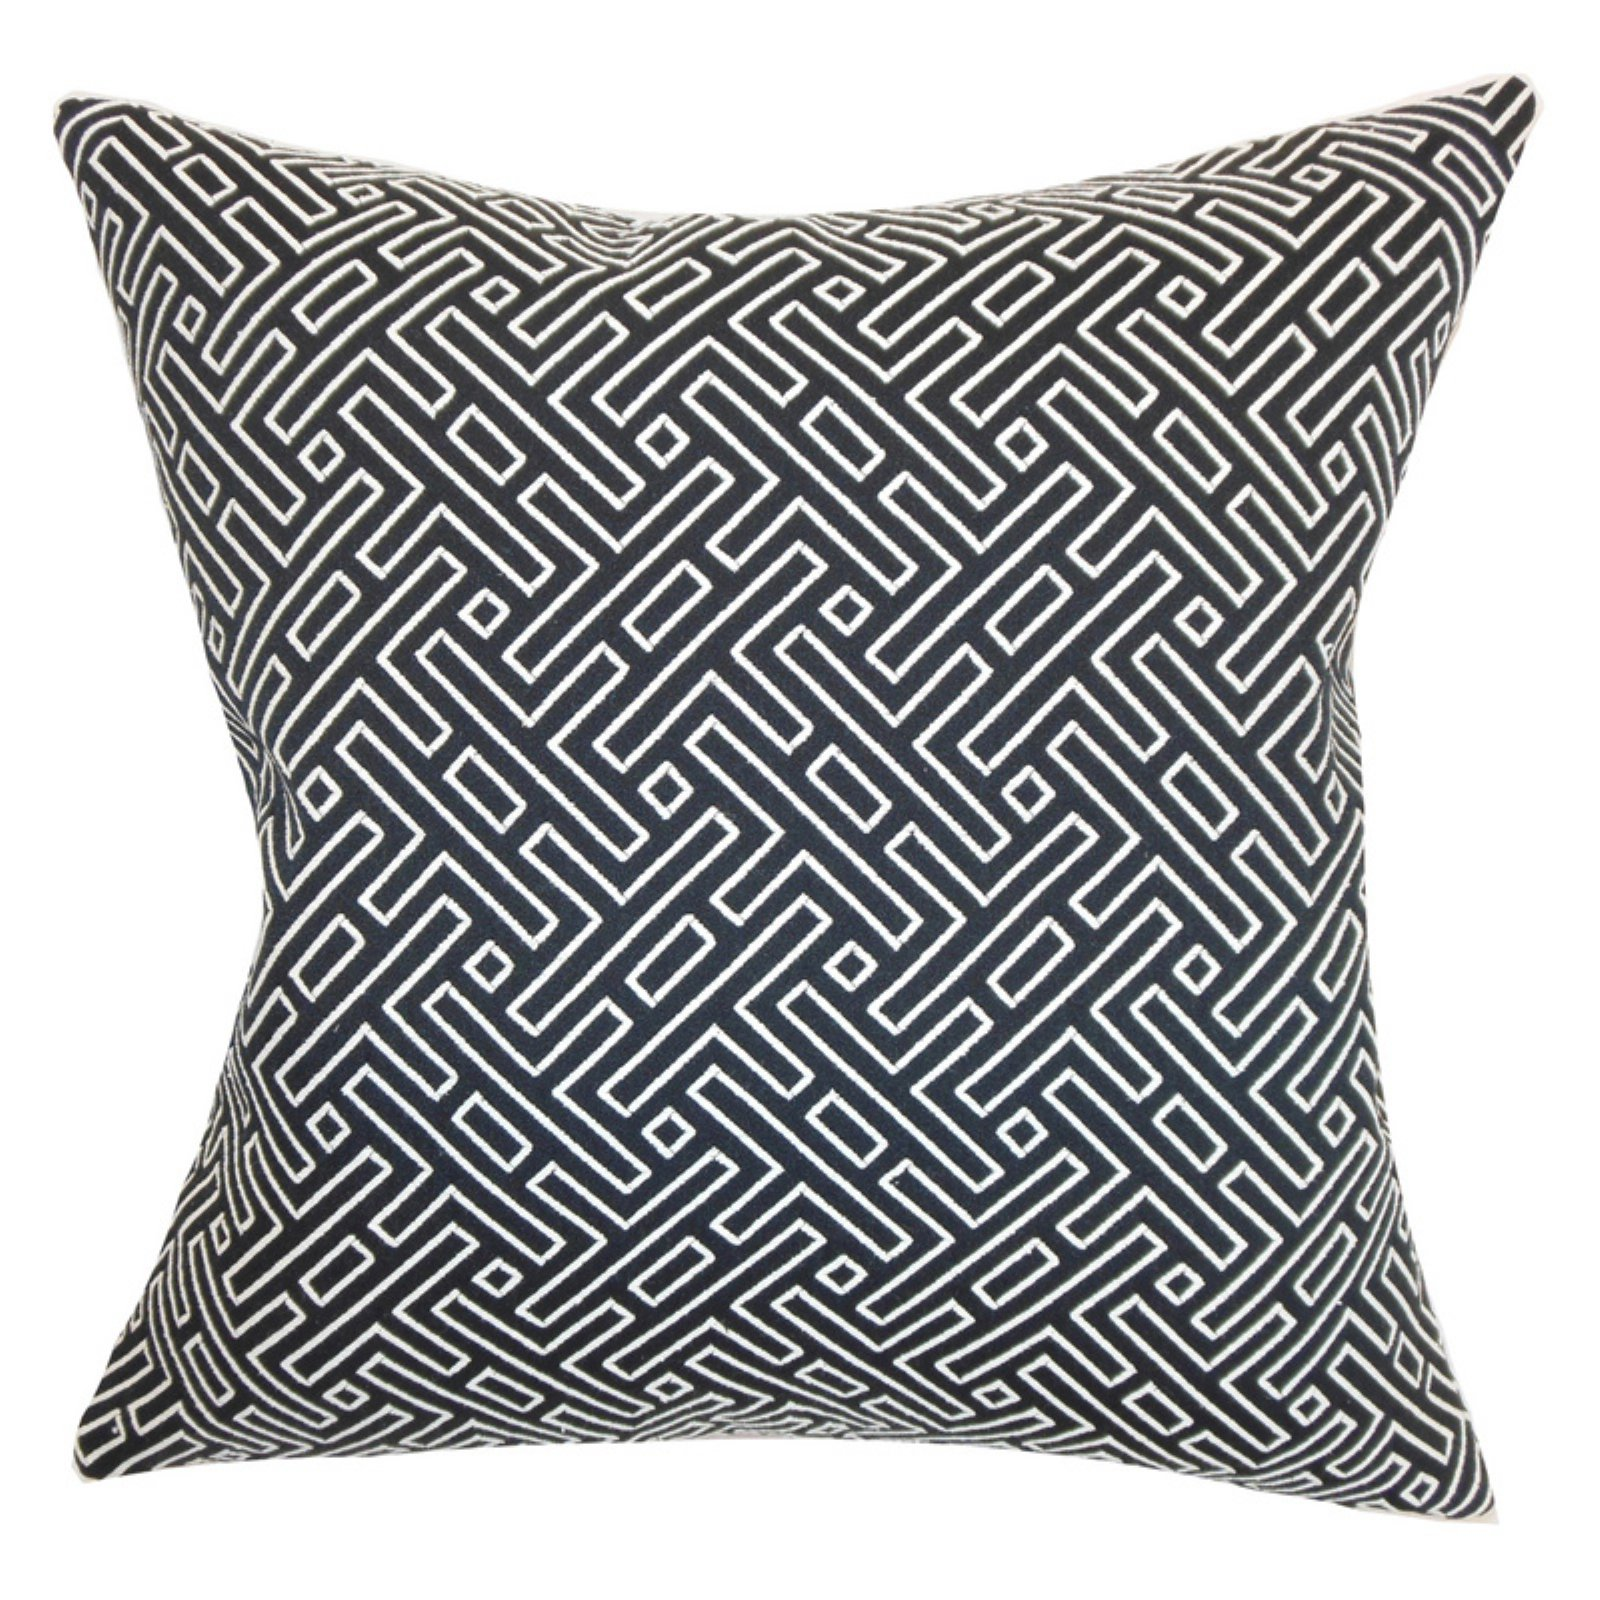 The Pillow Collection Ocussi Geometric Pillow - Navy